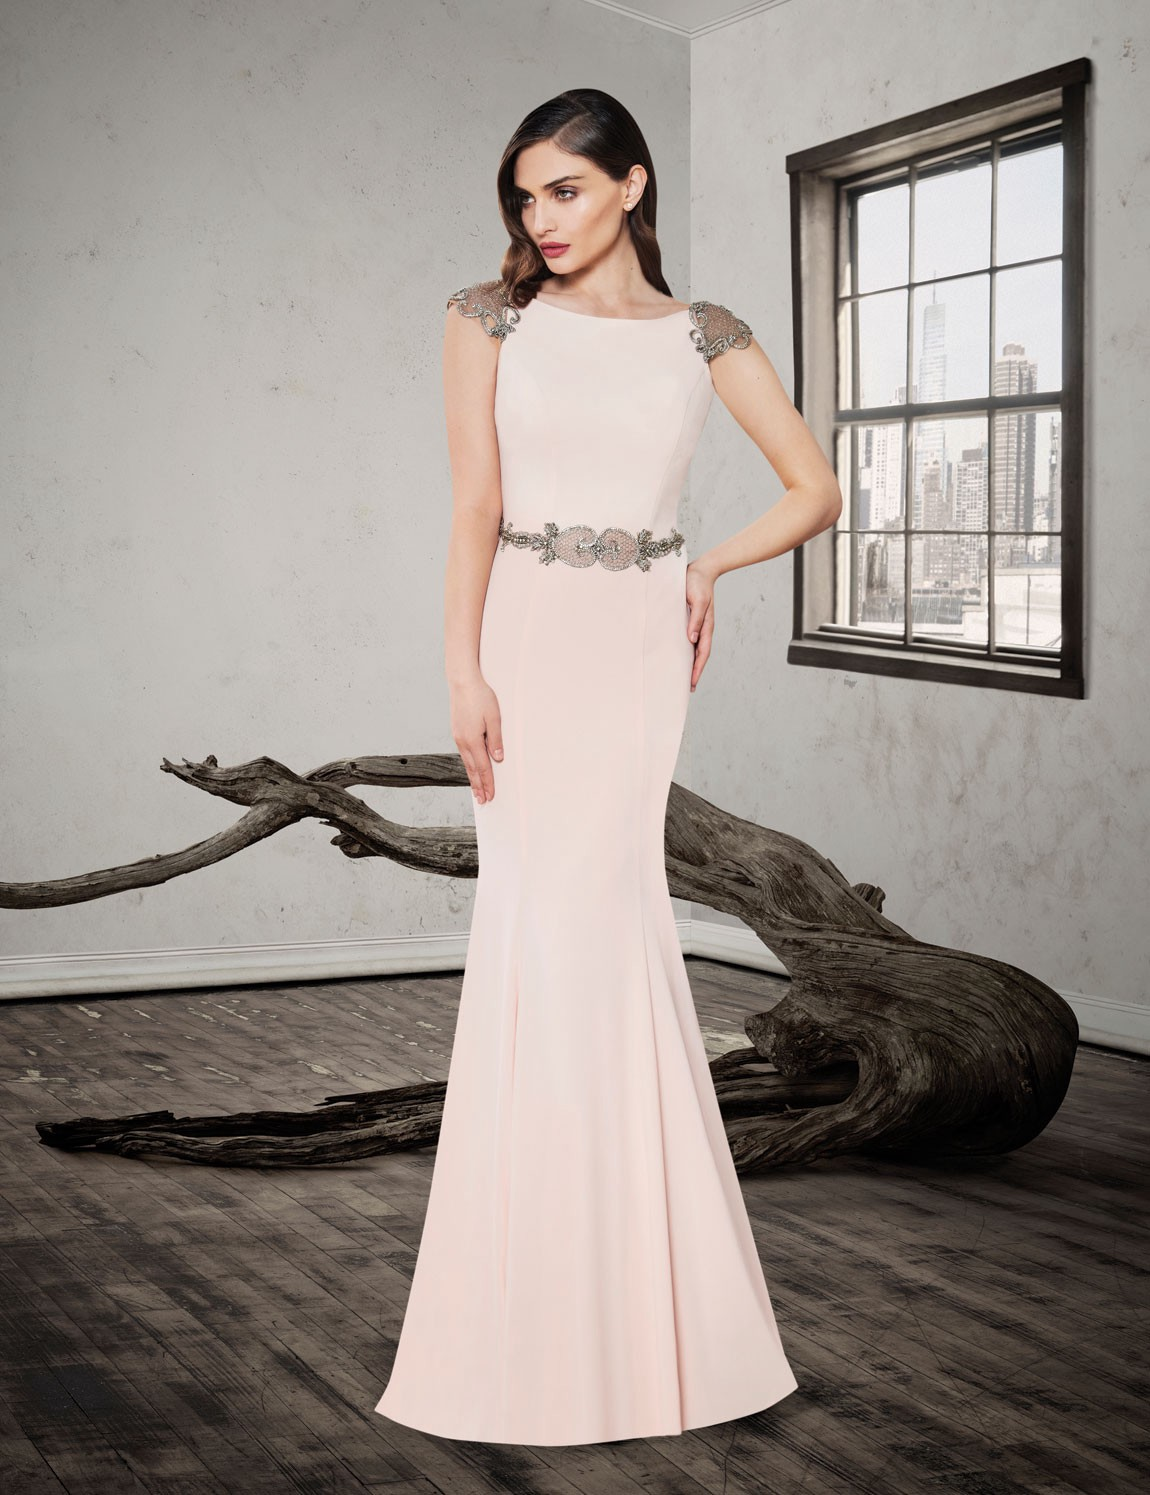 Online Wedding Guest Dresses Dress212 Llc Medium